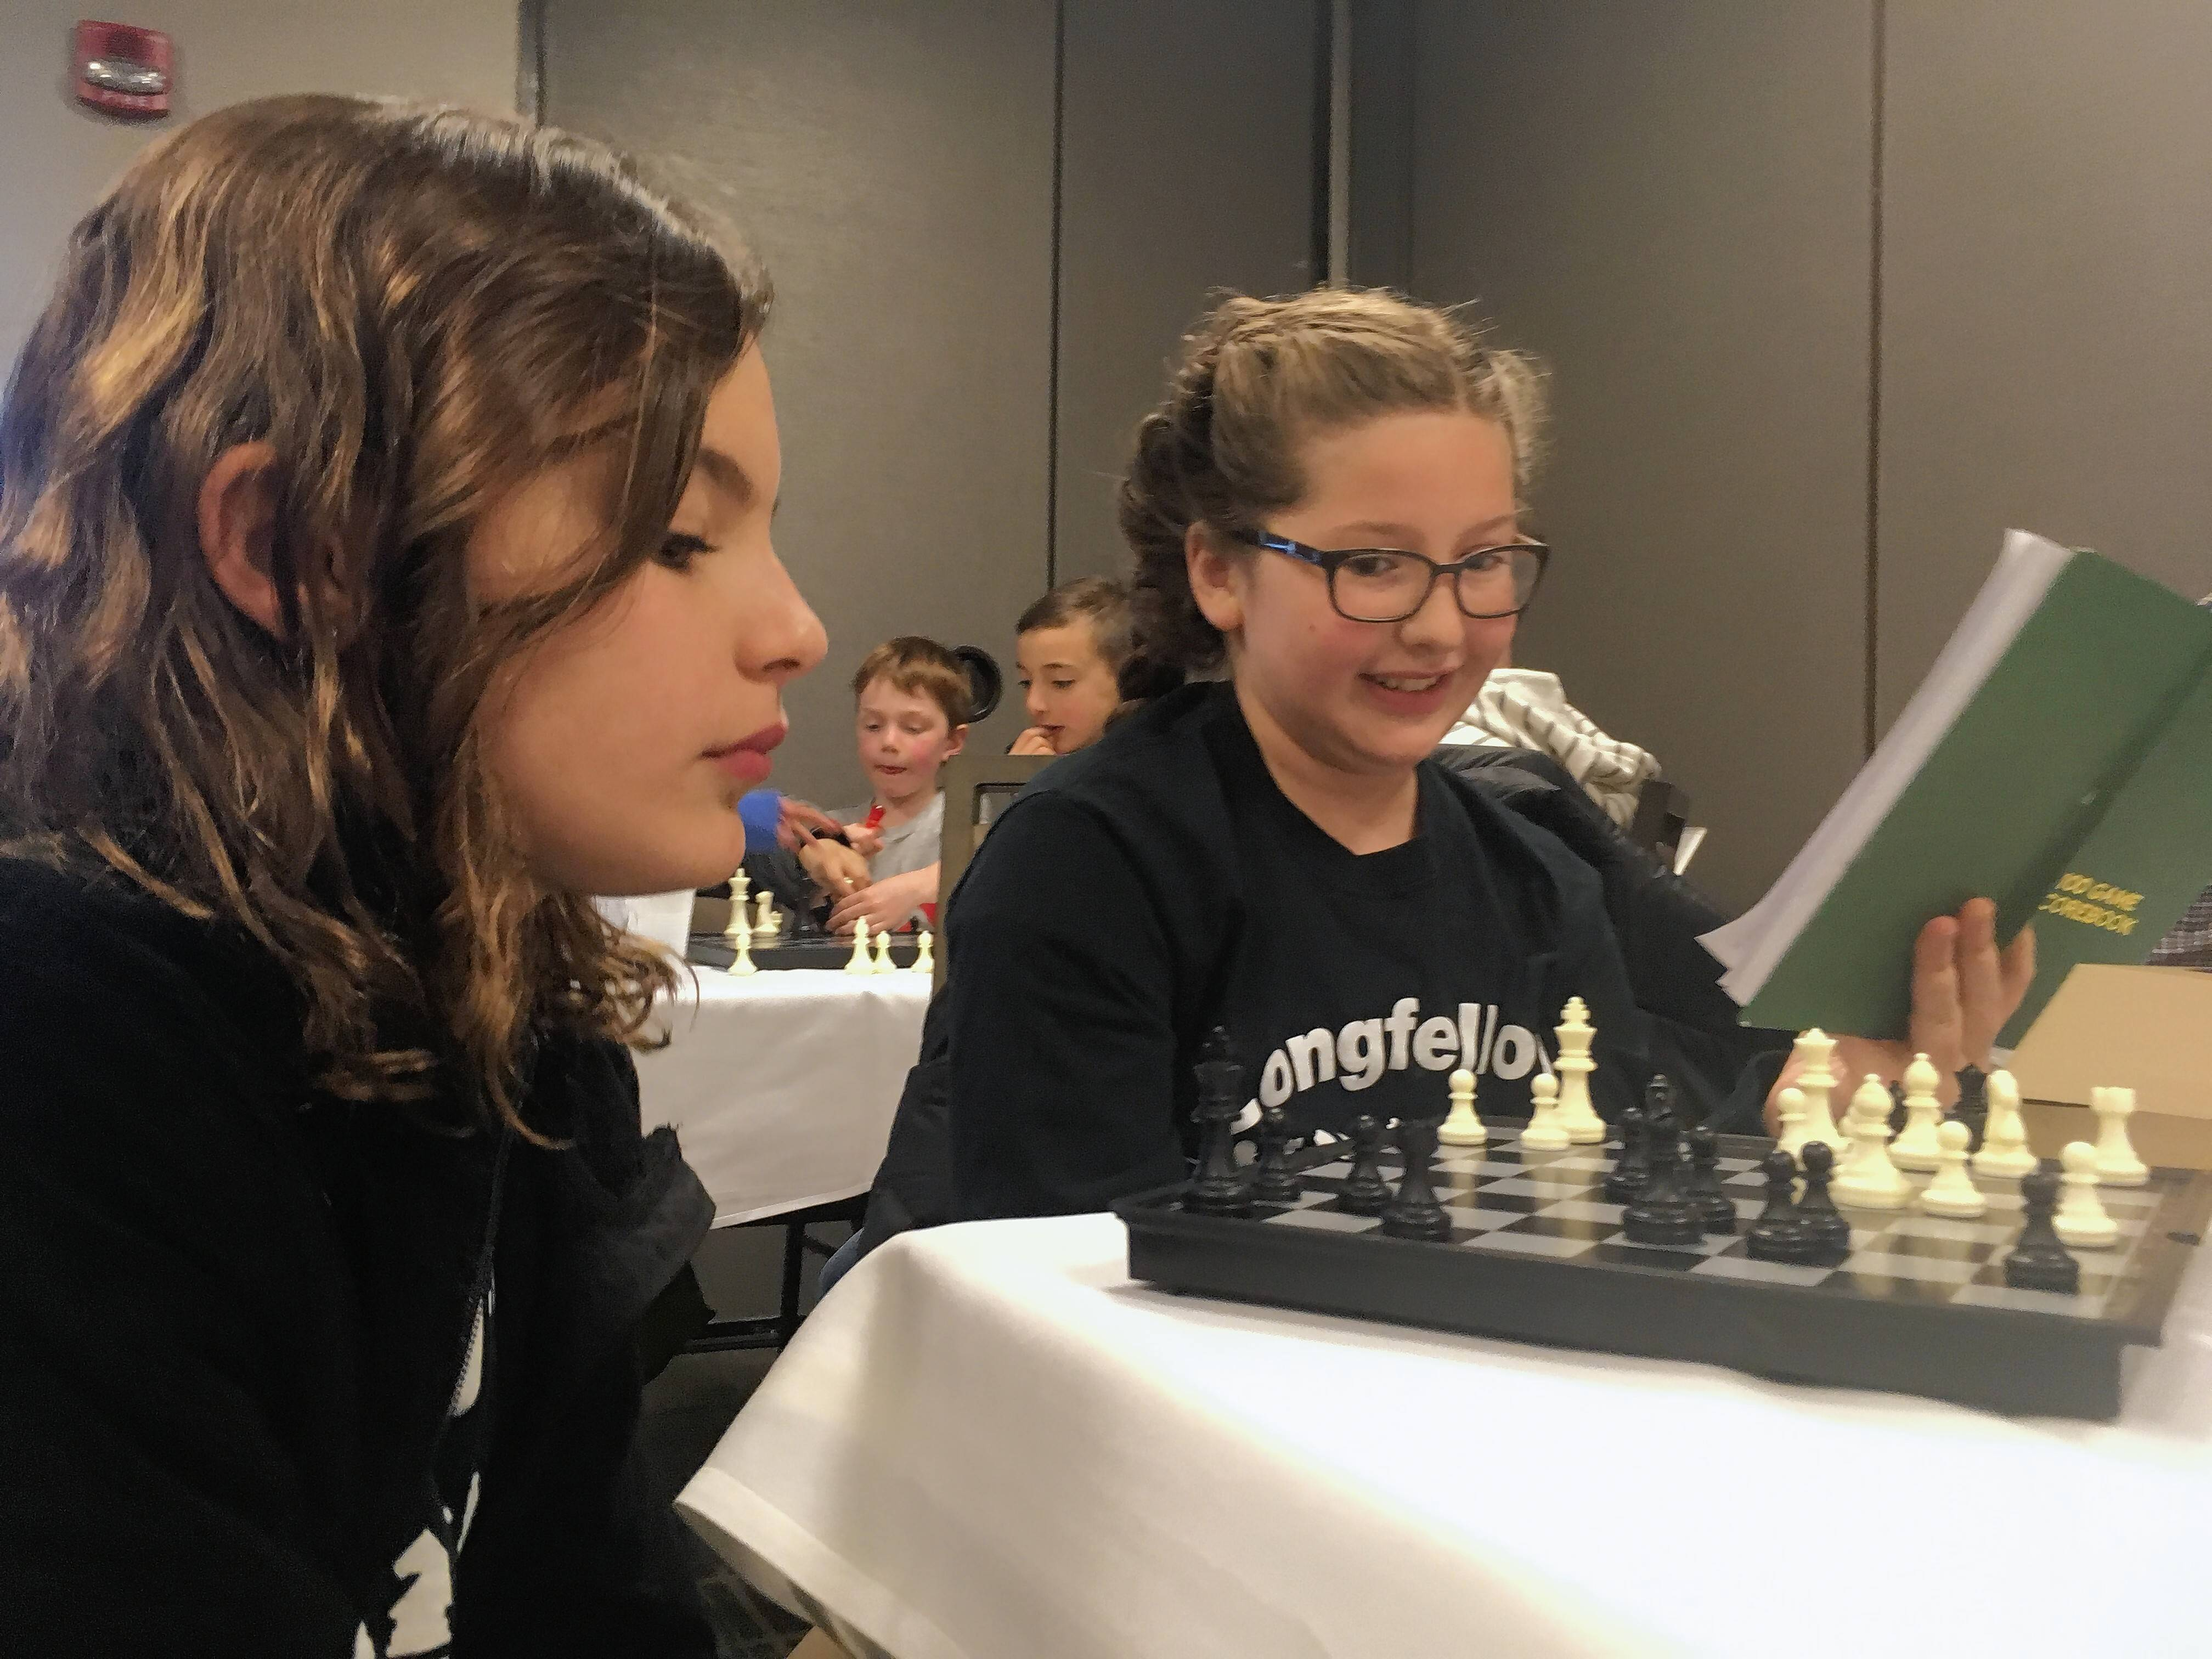 Vera Tax, 11, left, and Chloe Carlson, 10, right, from the Longfellow Chess Club in Wheaton review strategy between matches Saturday at the Illinois State Chess Championship in Schaumburg.